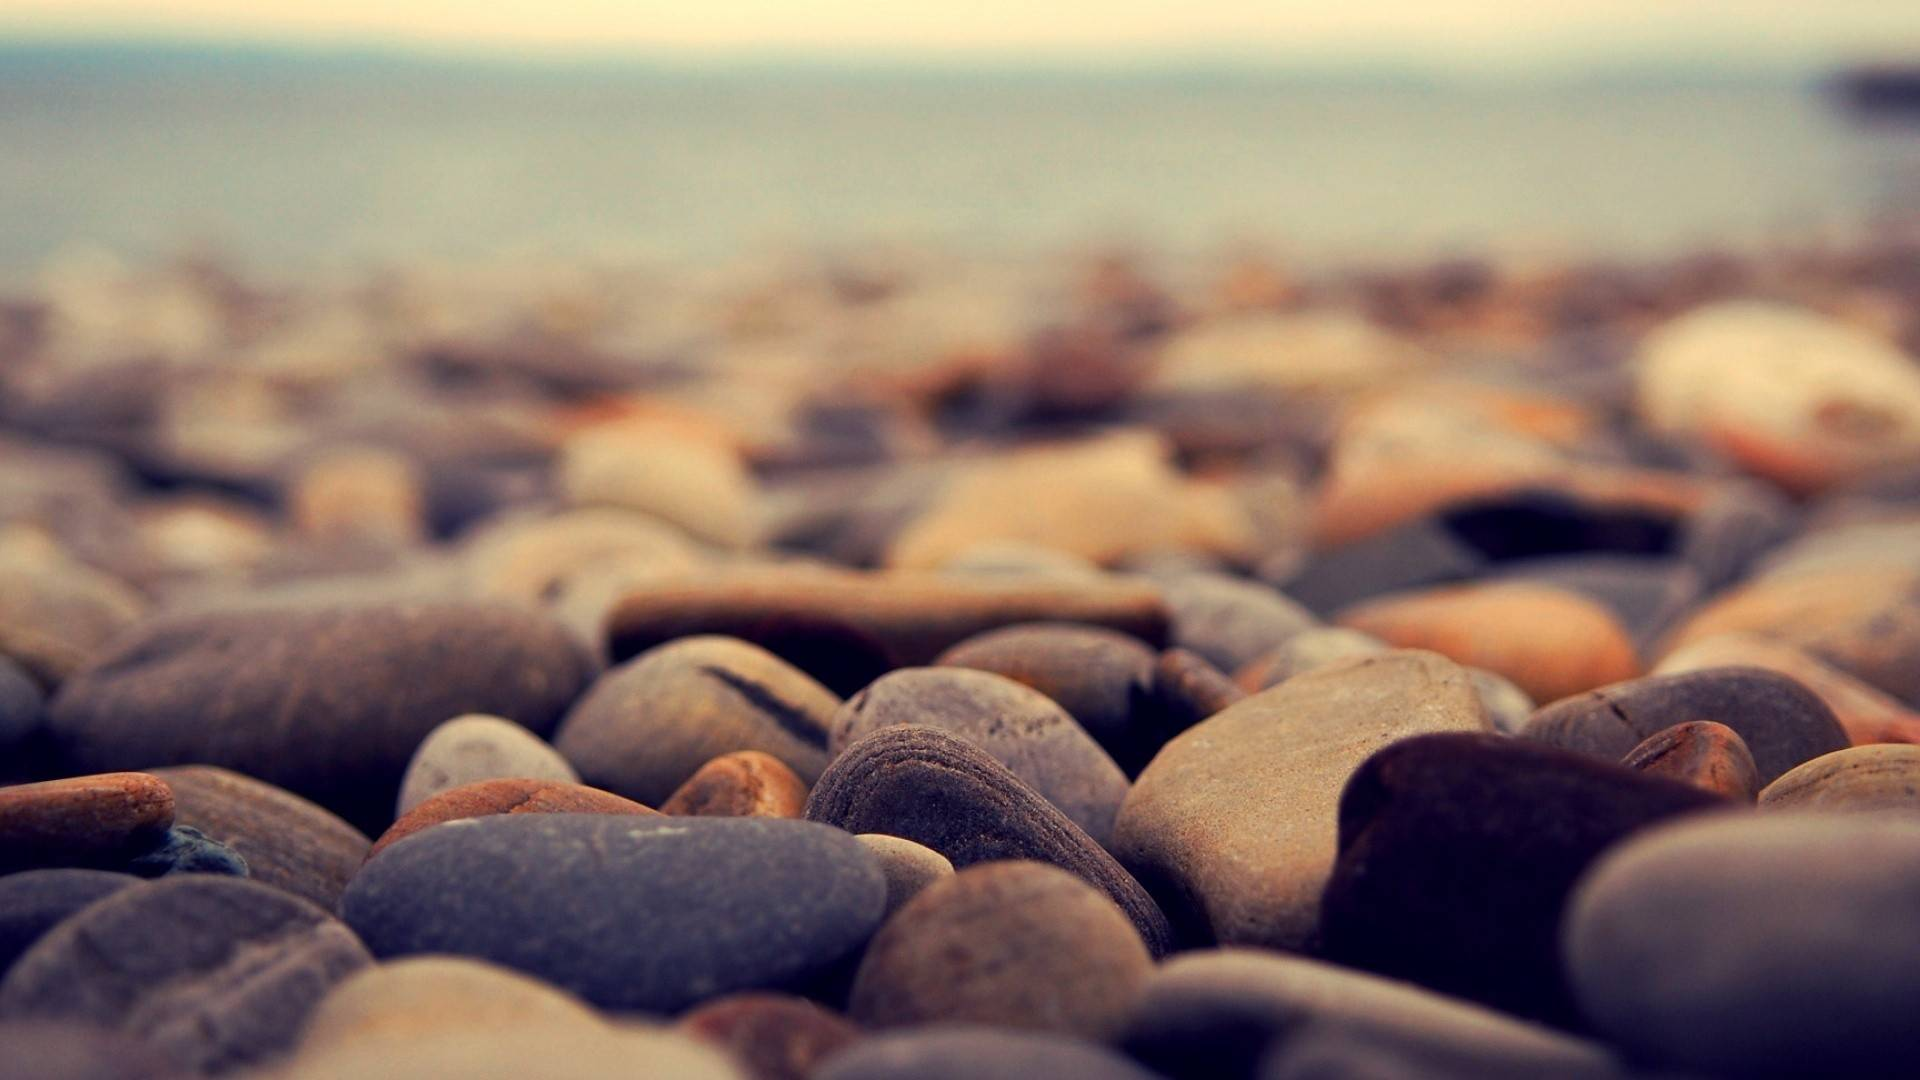 Beach Pebbles 1920×1080 Wallpaper 2147474